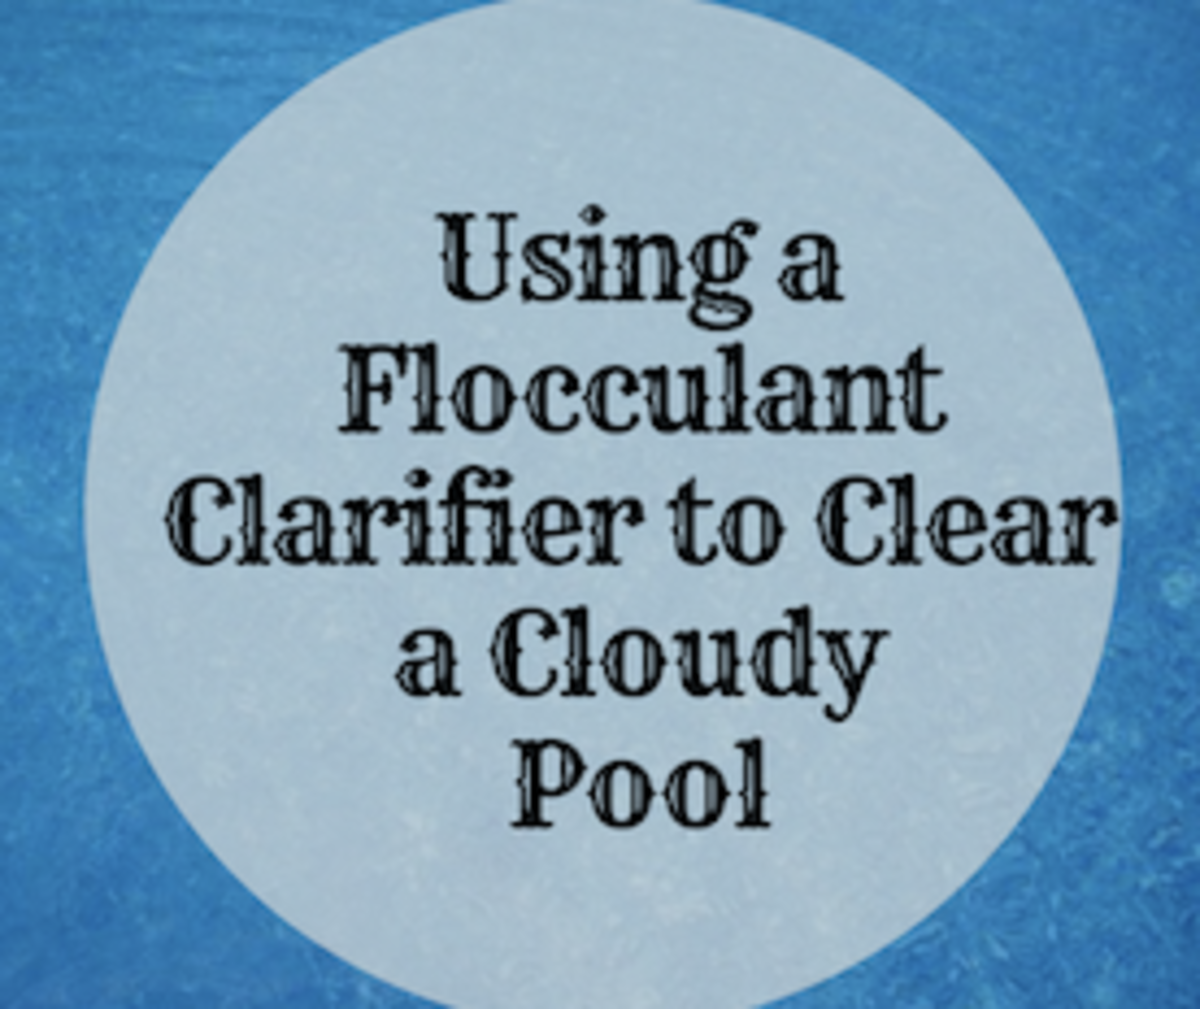 Using a Flocculant Clarifier to Clear a Cloudy Pool